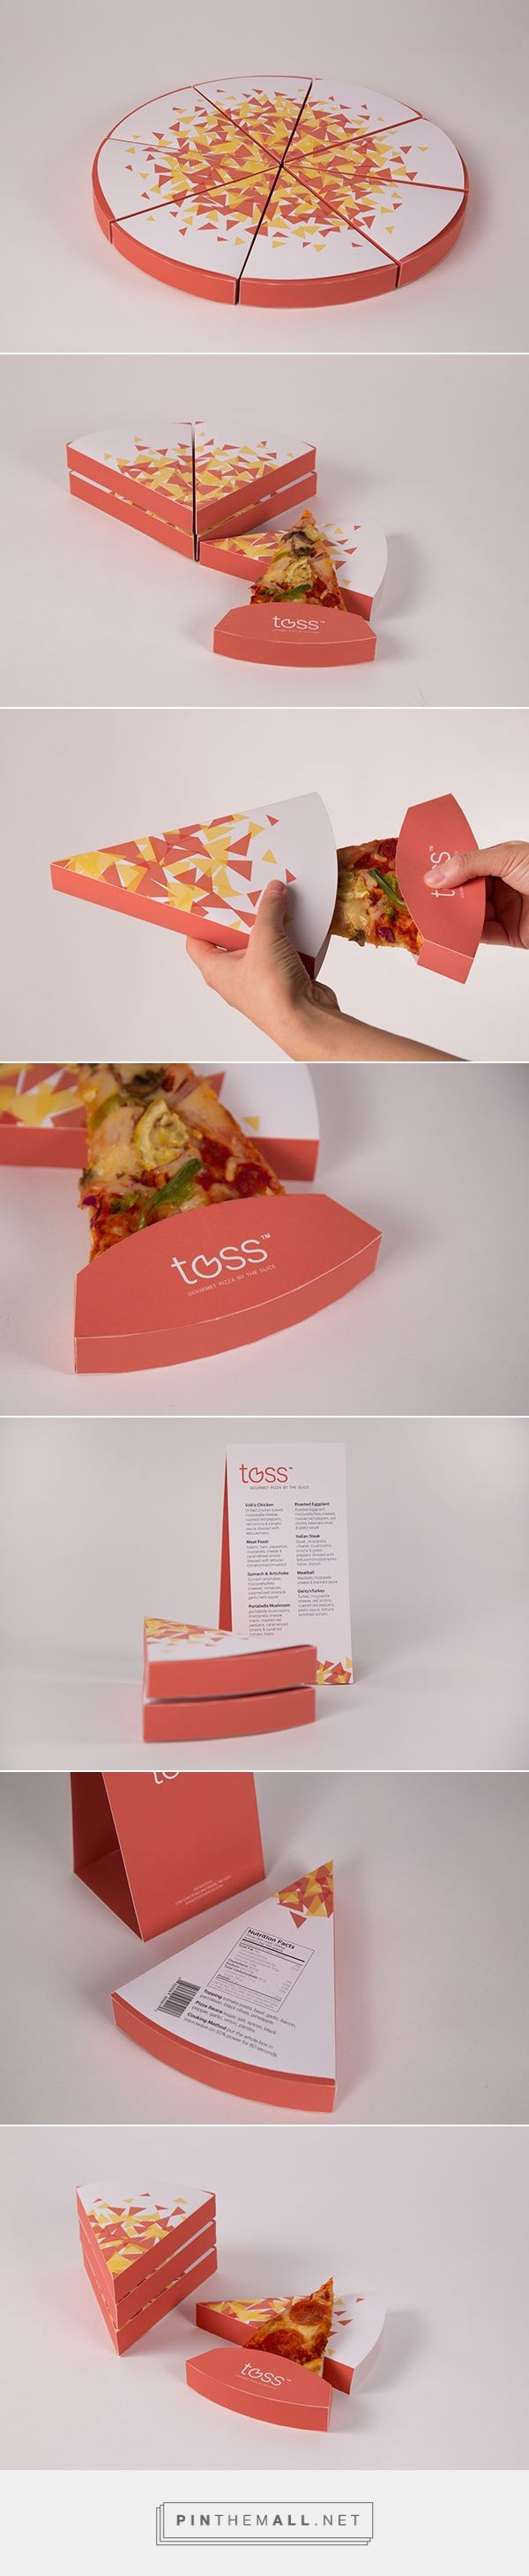 Brandshift: Toss - Gourmet Pizza by the Slice designed by Yinan Wang